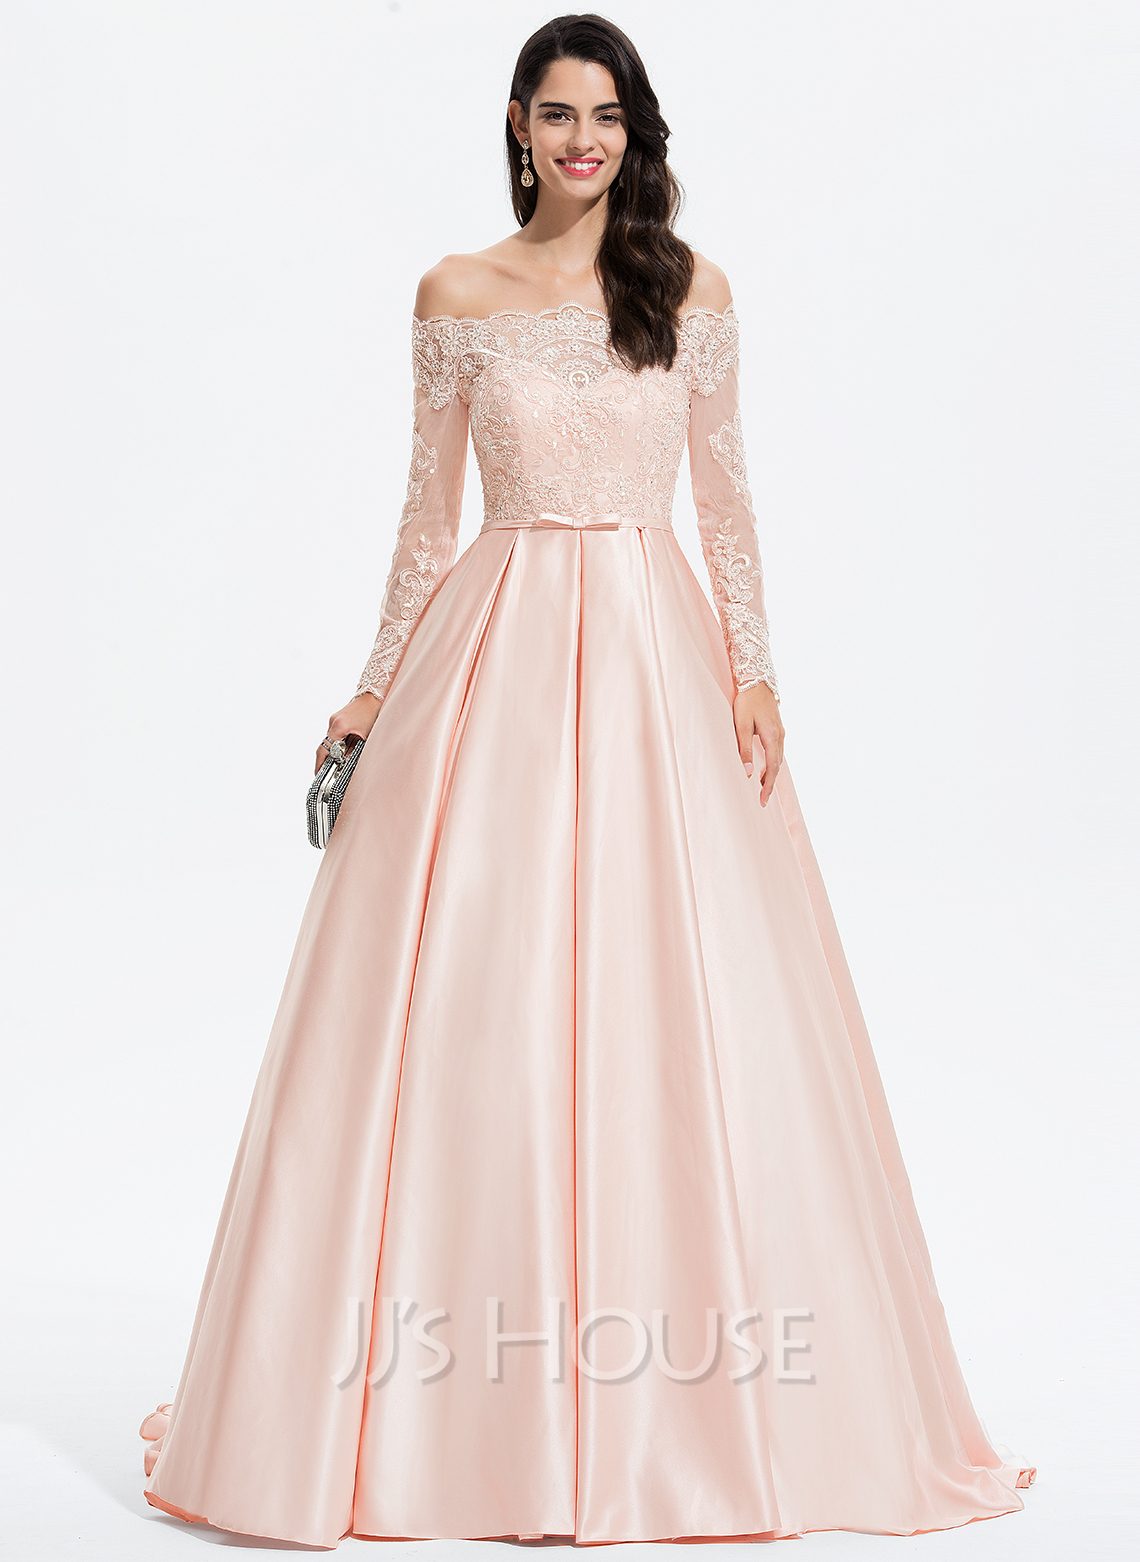 84db4b19f8 Ball-Gown/Princess Off-the-Shoulder Sweep Train Satin Prom Dresses With  Beading Sequins Bow(s) (018175925)